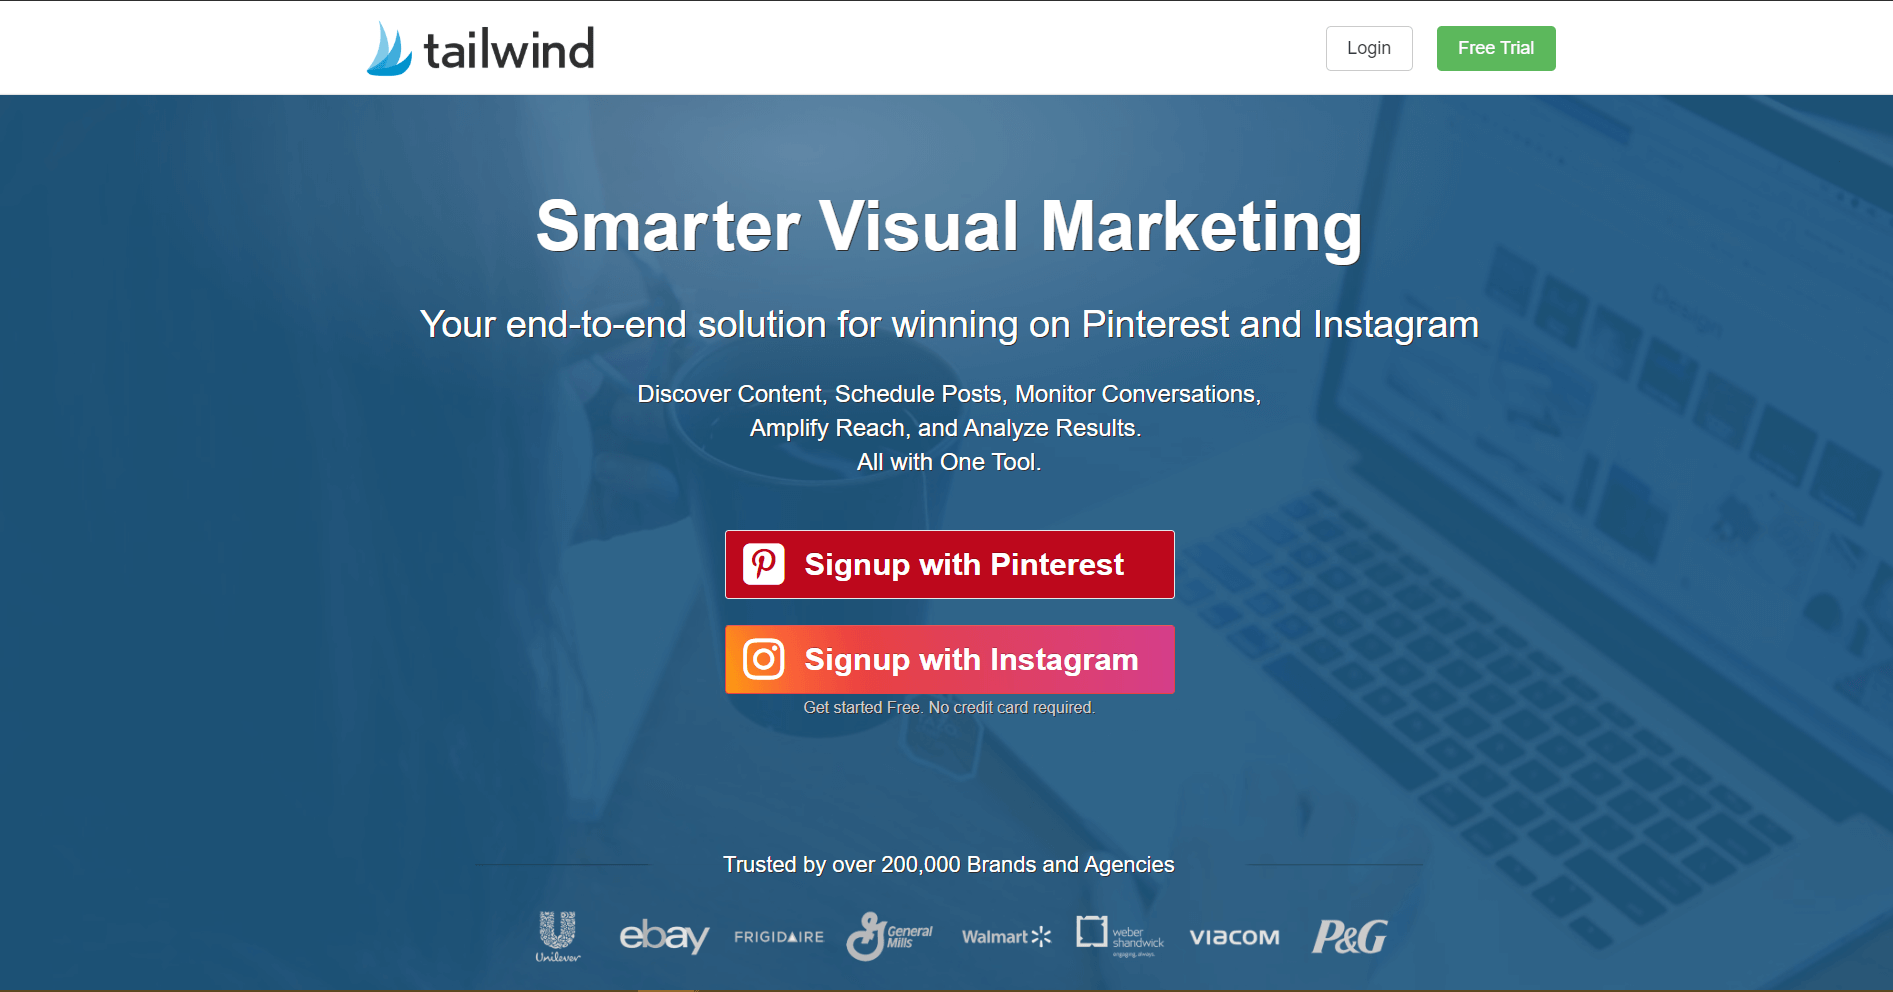 Tailwind Social Media Marketing Tool